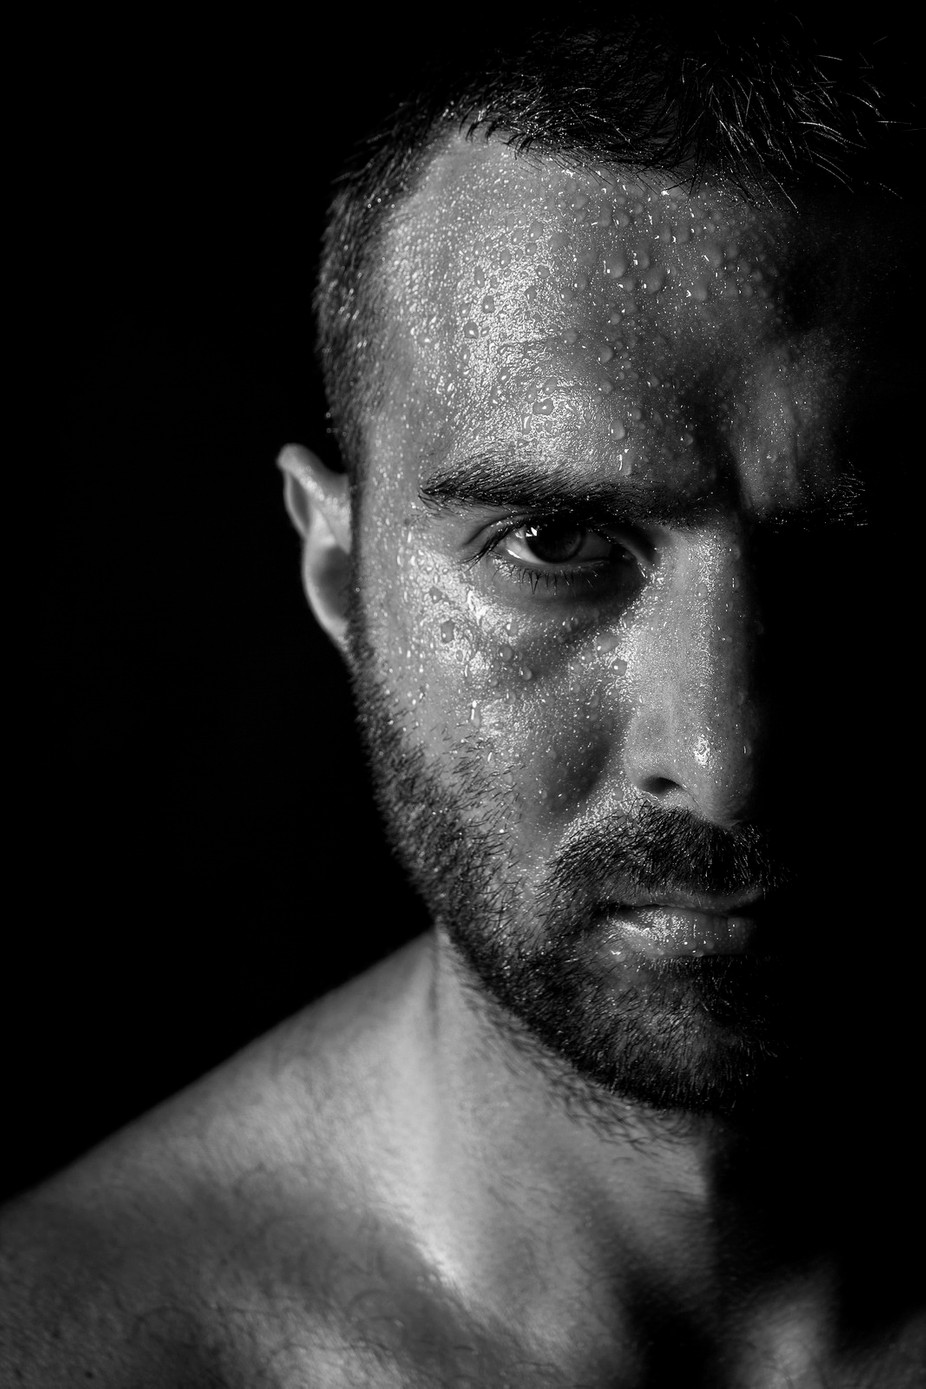 Wet Portrait by PrysyazhnyyOleksiy - Selfies In Black and White Photo Contest